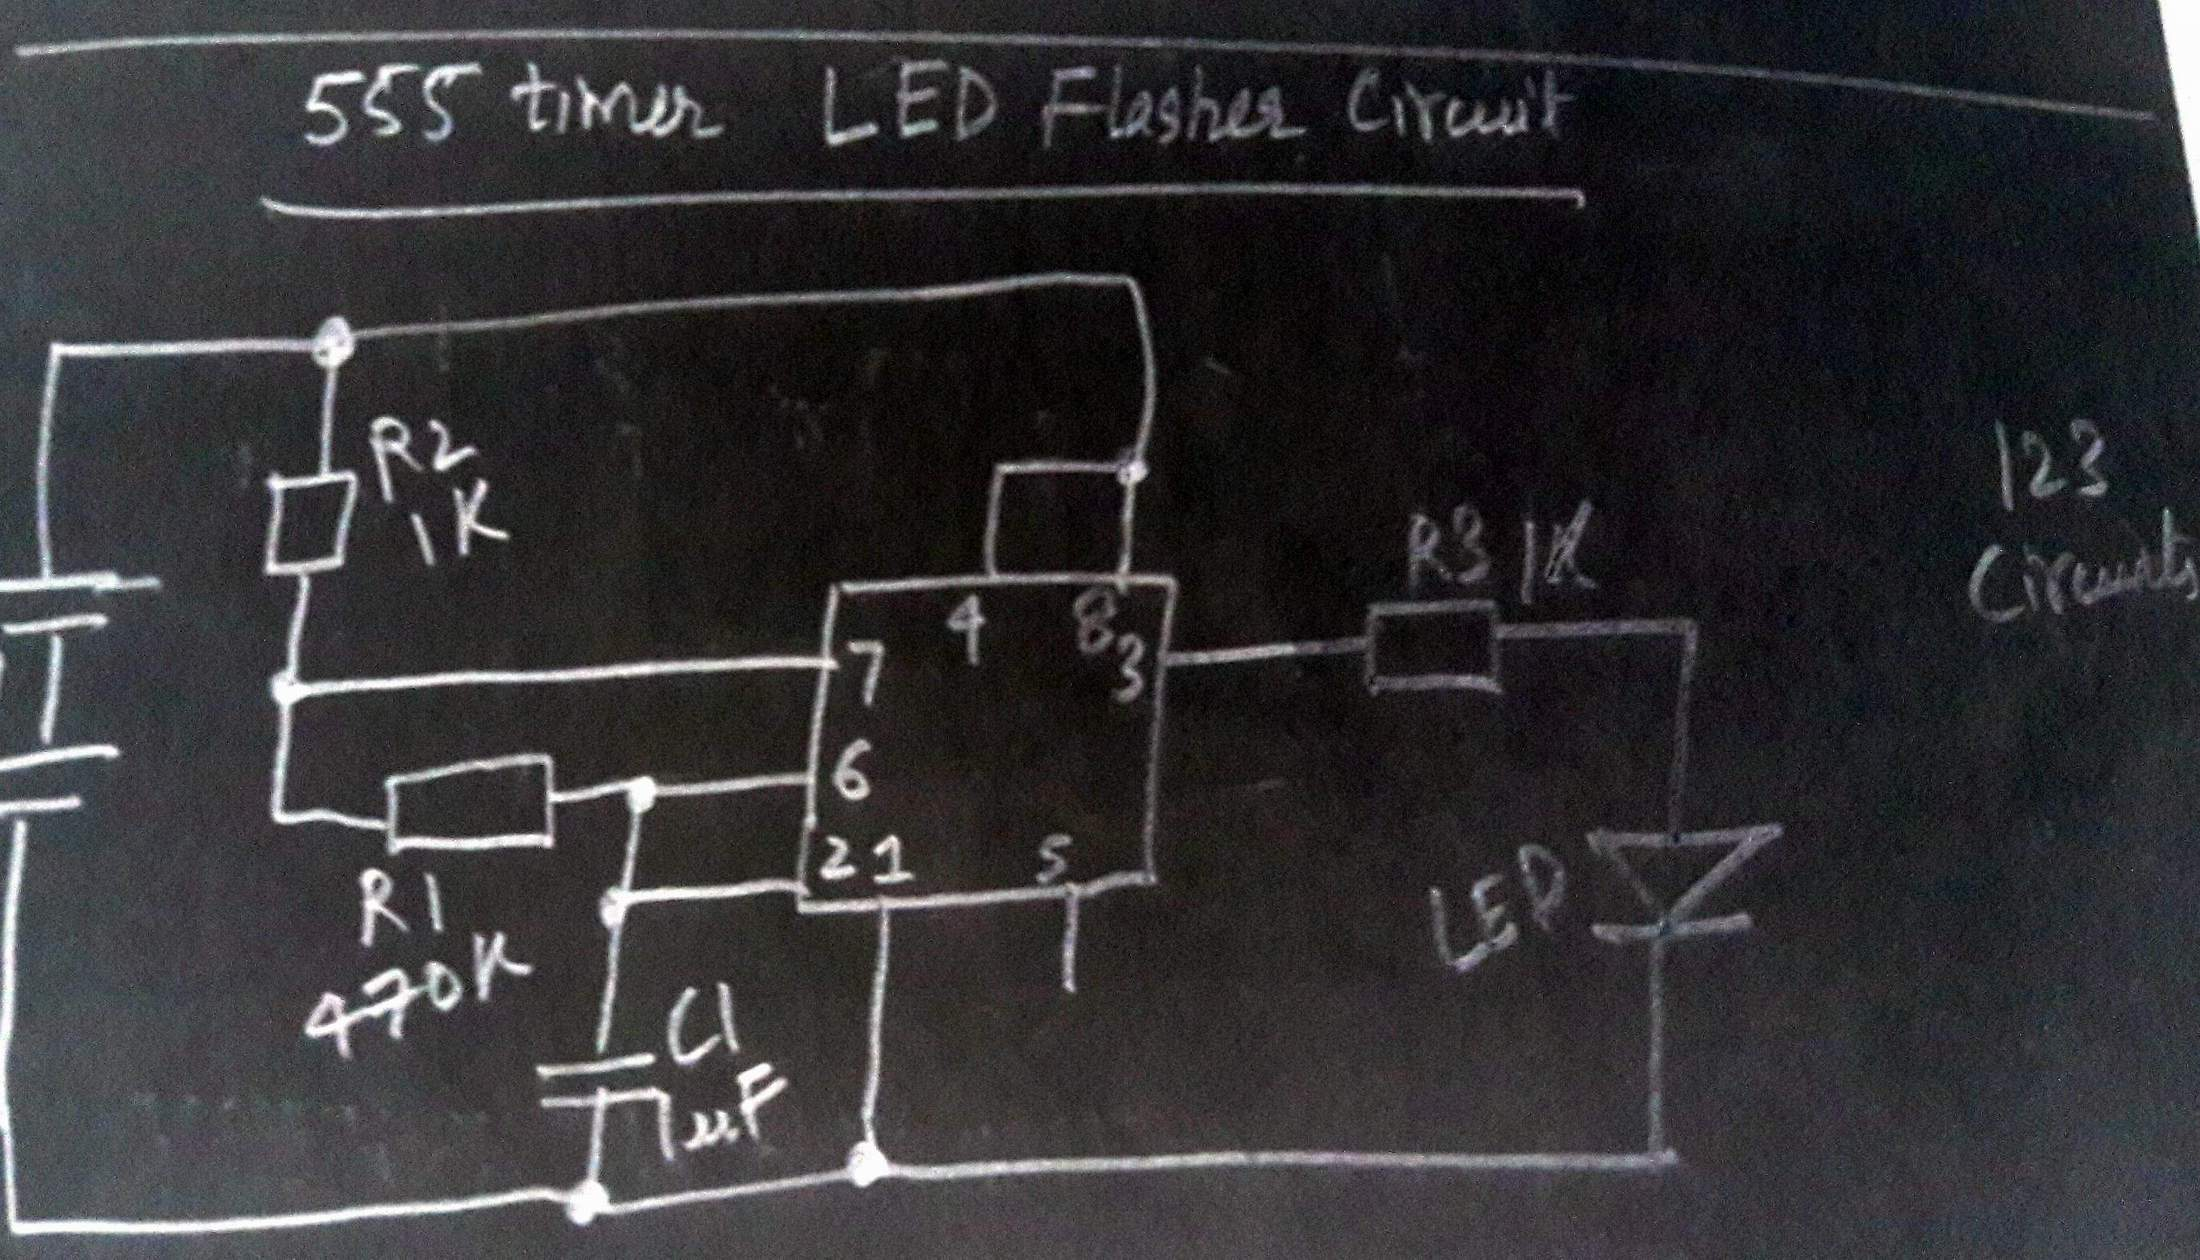 Electronics Tutorial Circuits Schematics Electronix The Alternating Led Flasher Circuit With A 555 Ic More Tutorials